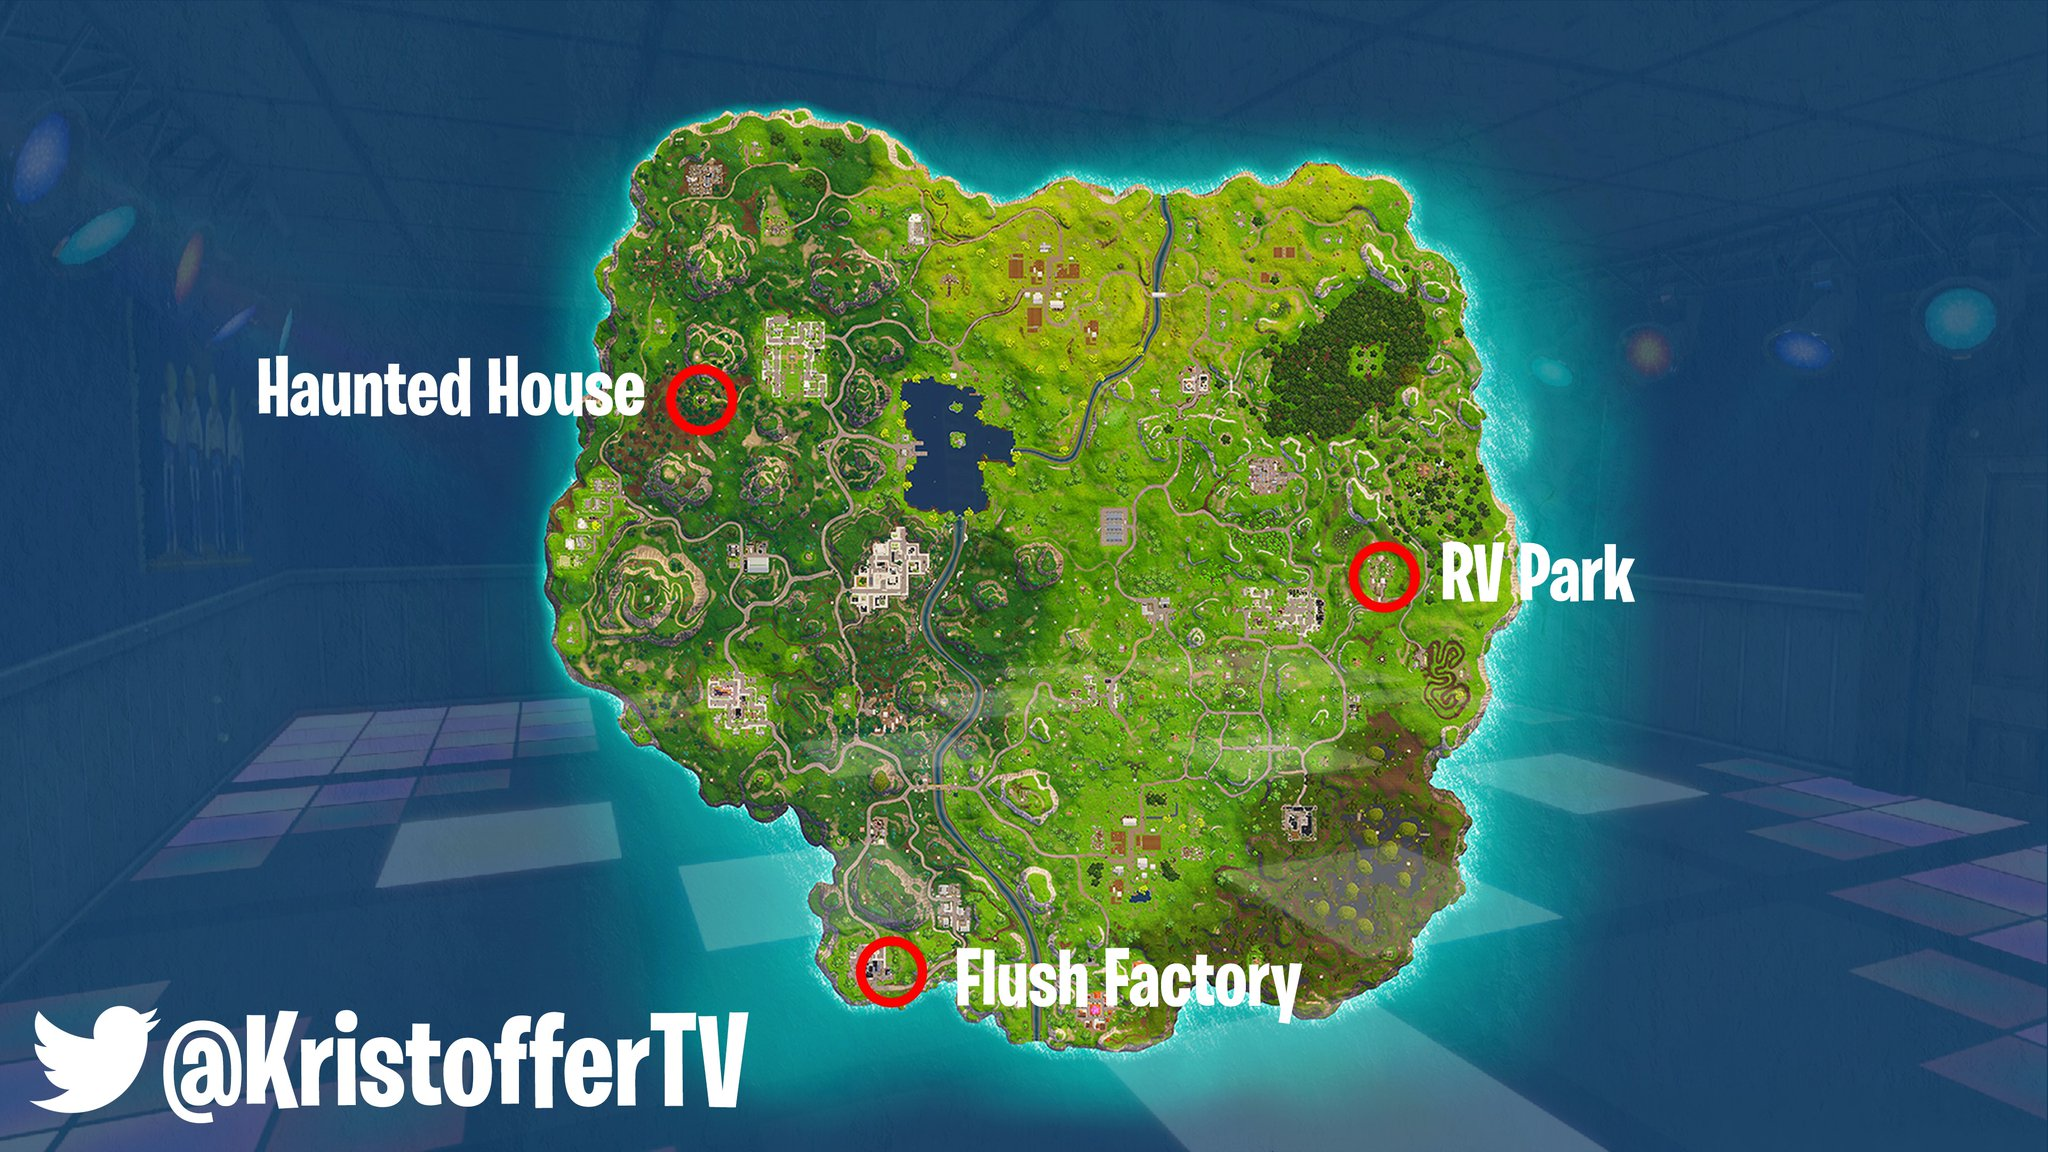 Known Locations For Dance Floors For The Dance On Different Dance